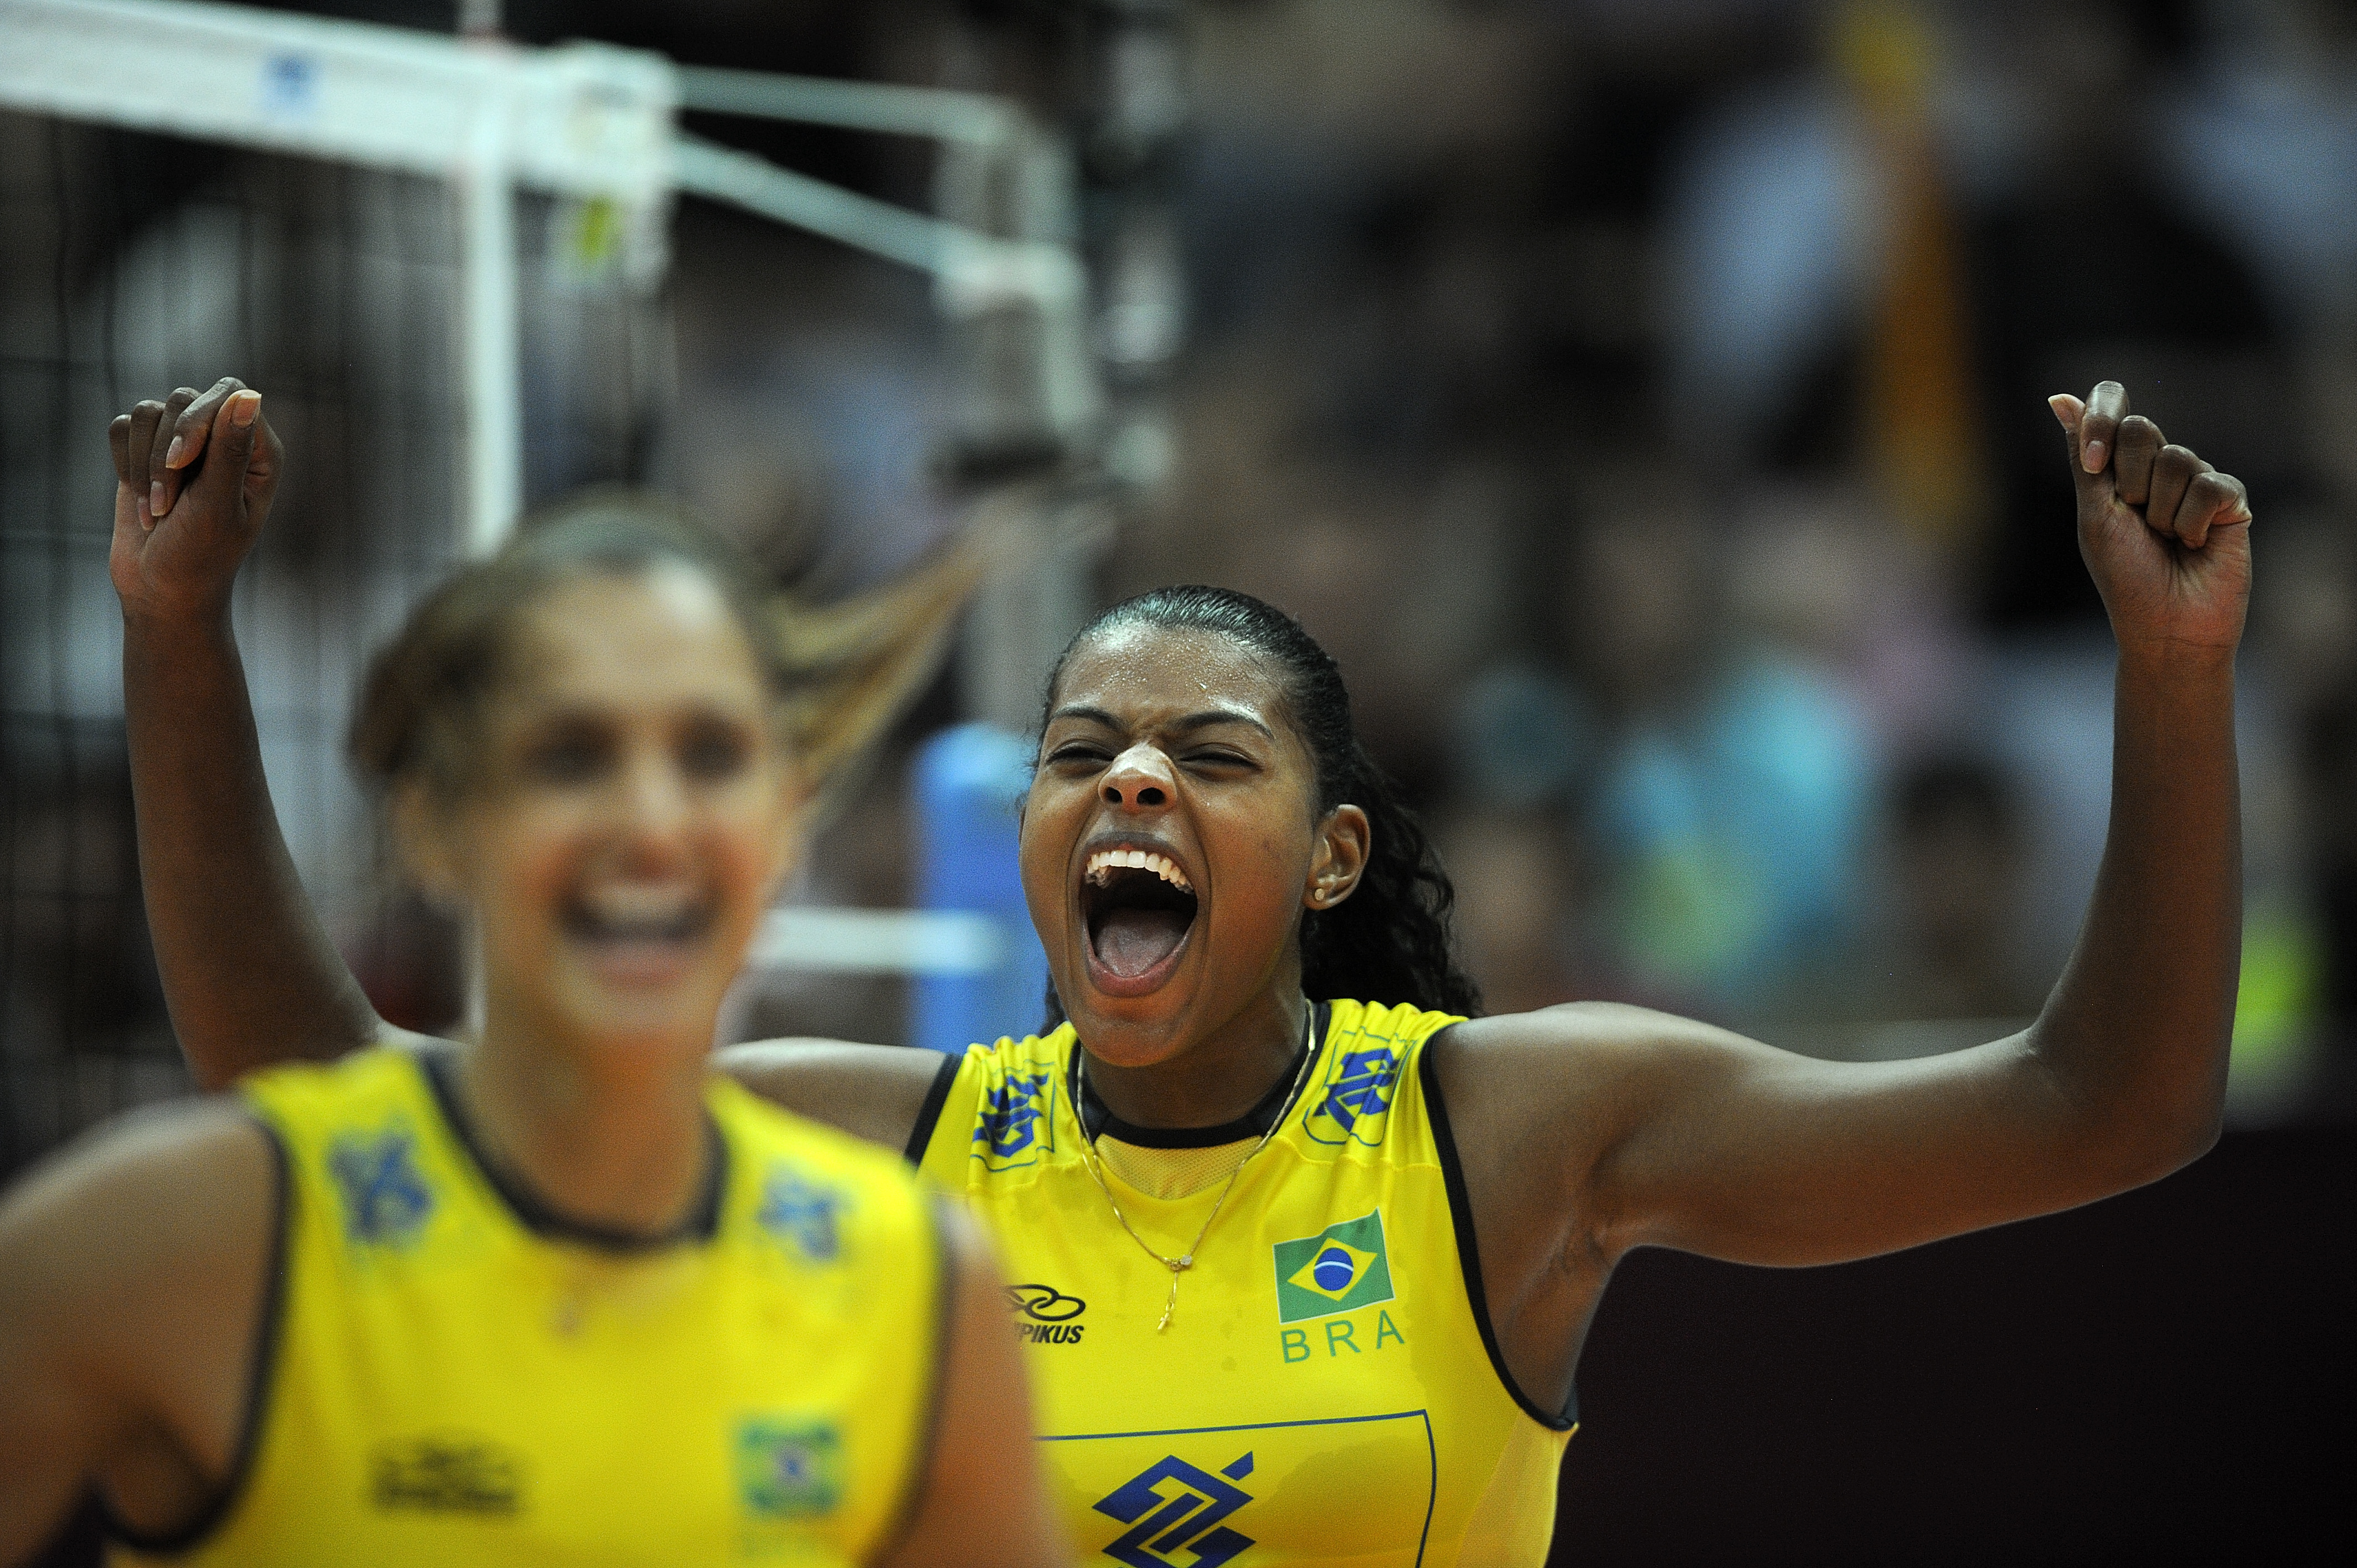 Fernanda Rodrigues feel excited about the victory